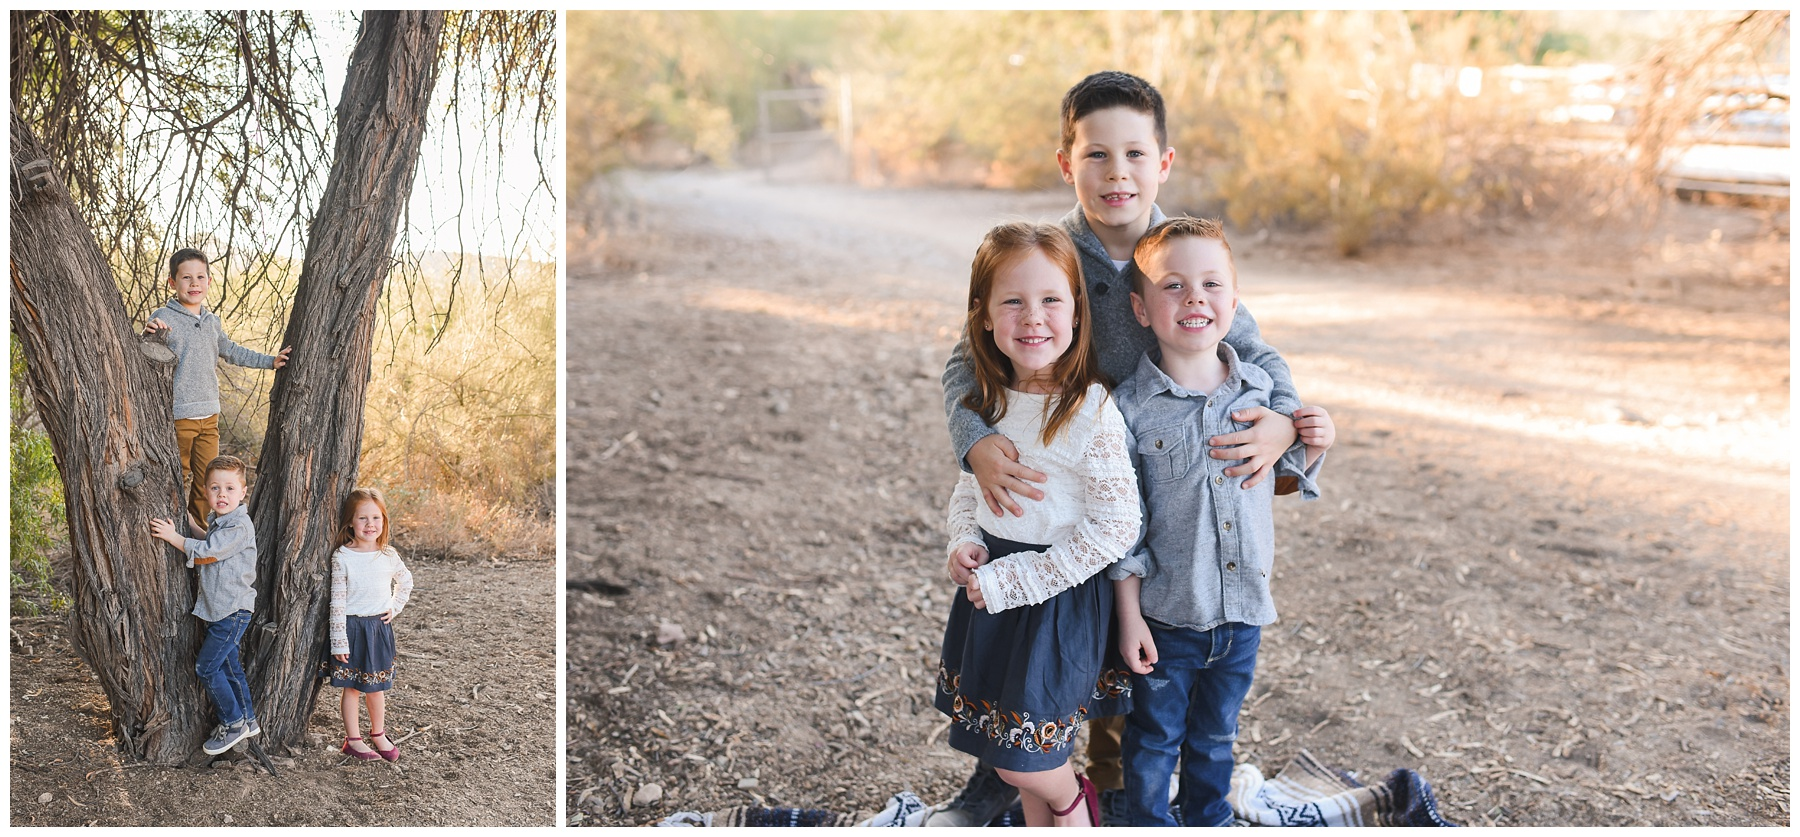 Sibling shot | Phoenix Lifestyle Family Portraits